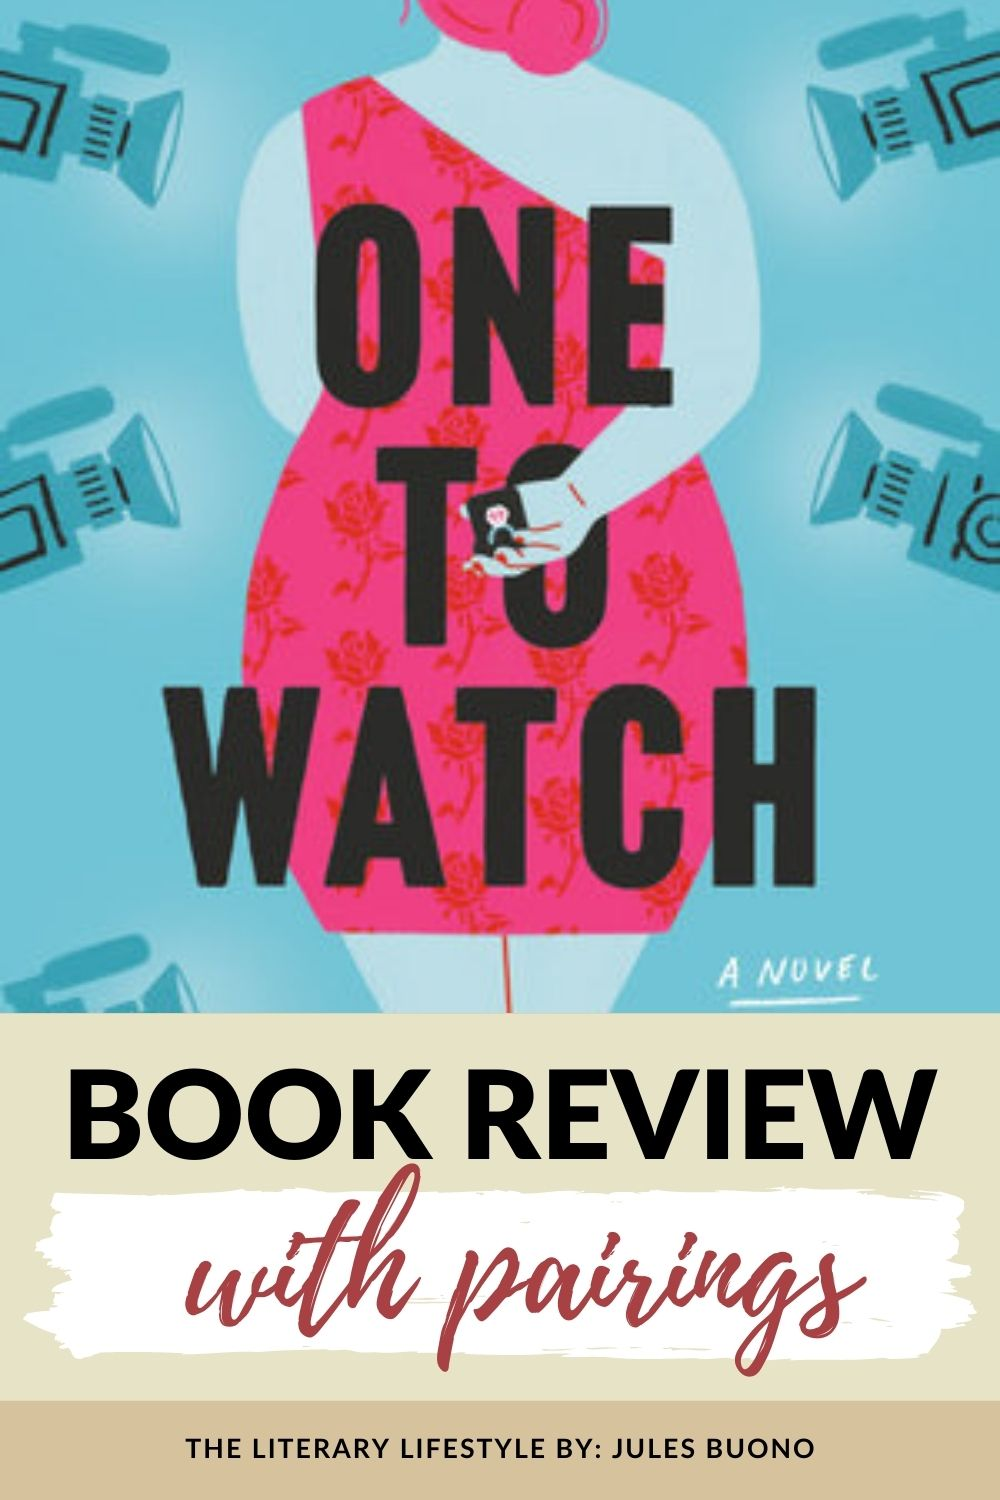 Book Review: One to Watch